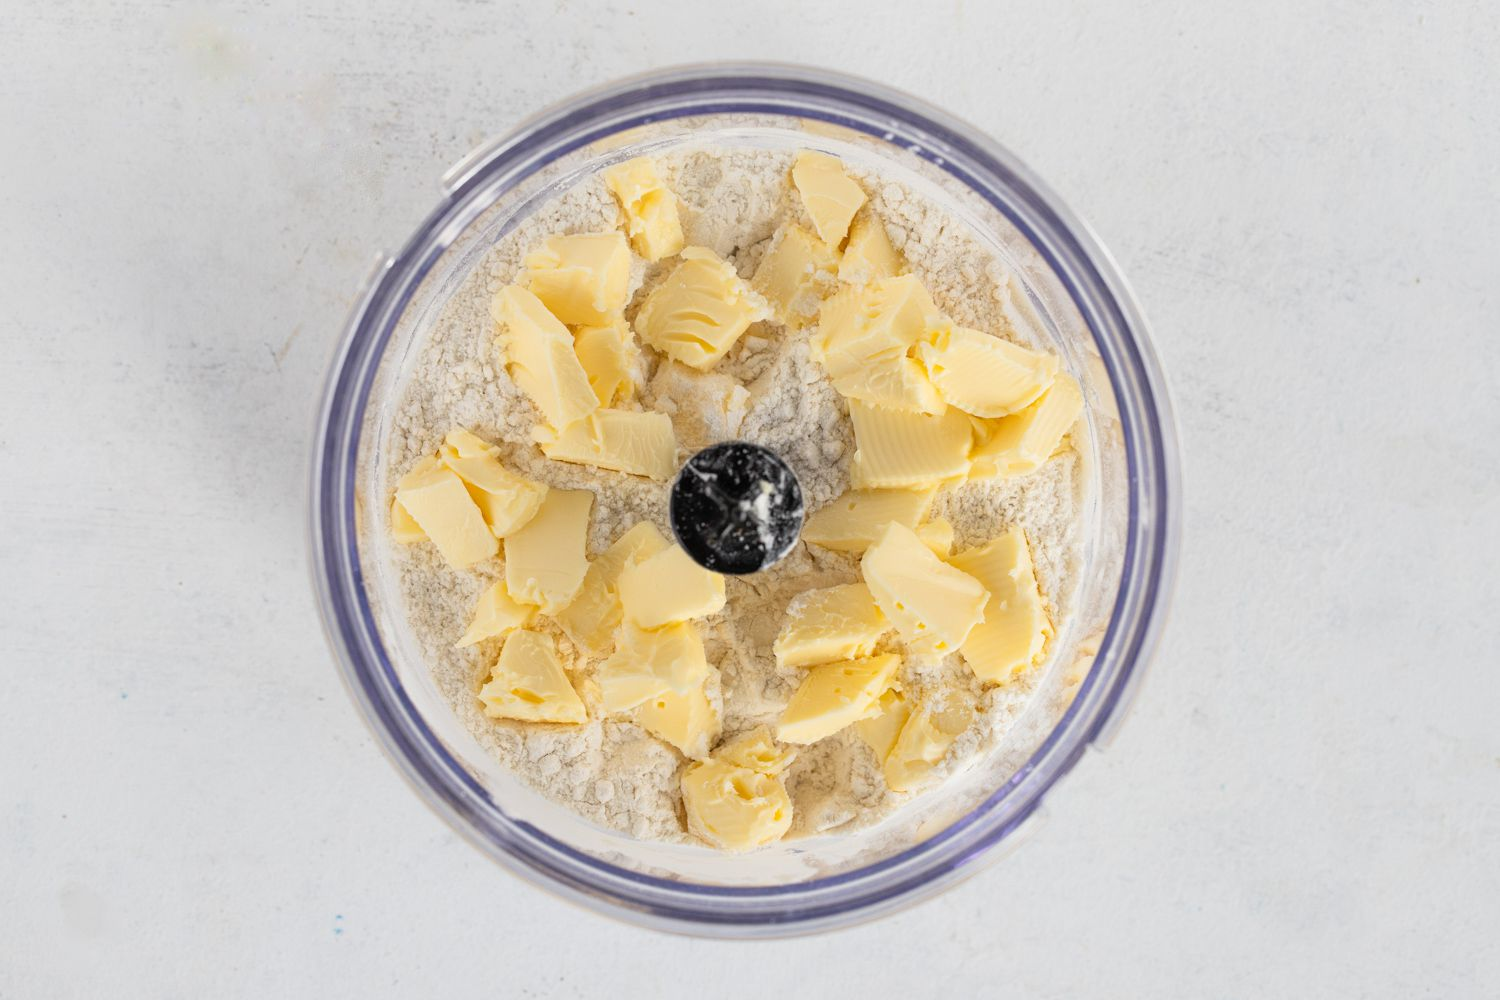 Flour, salt and butter in a food processor